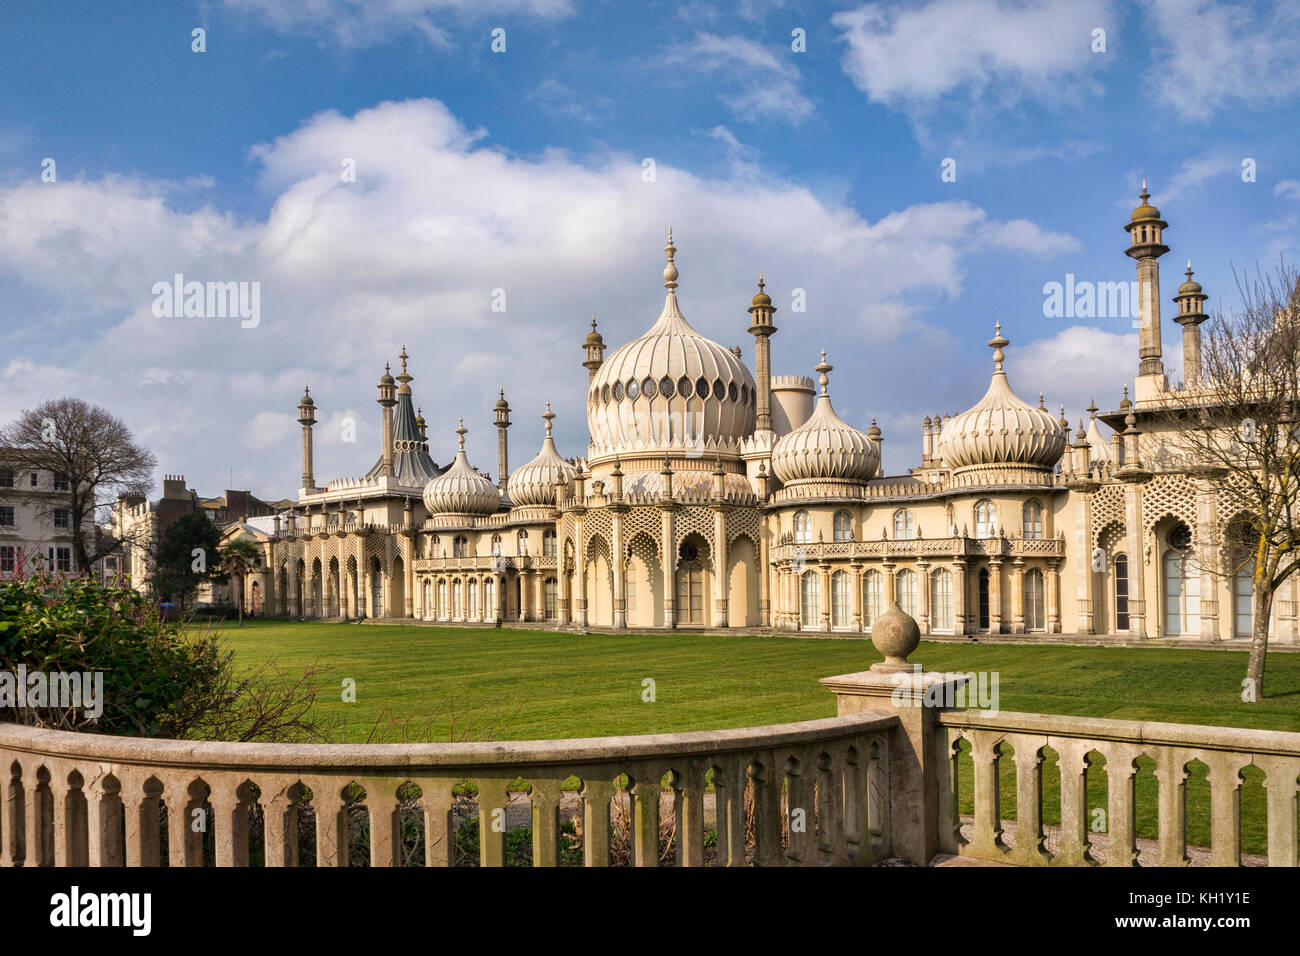 Royal Pavilion, Brighton, Sussex, England, UK. - Stock Image